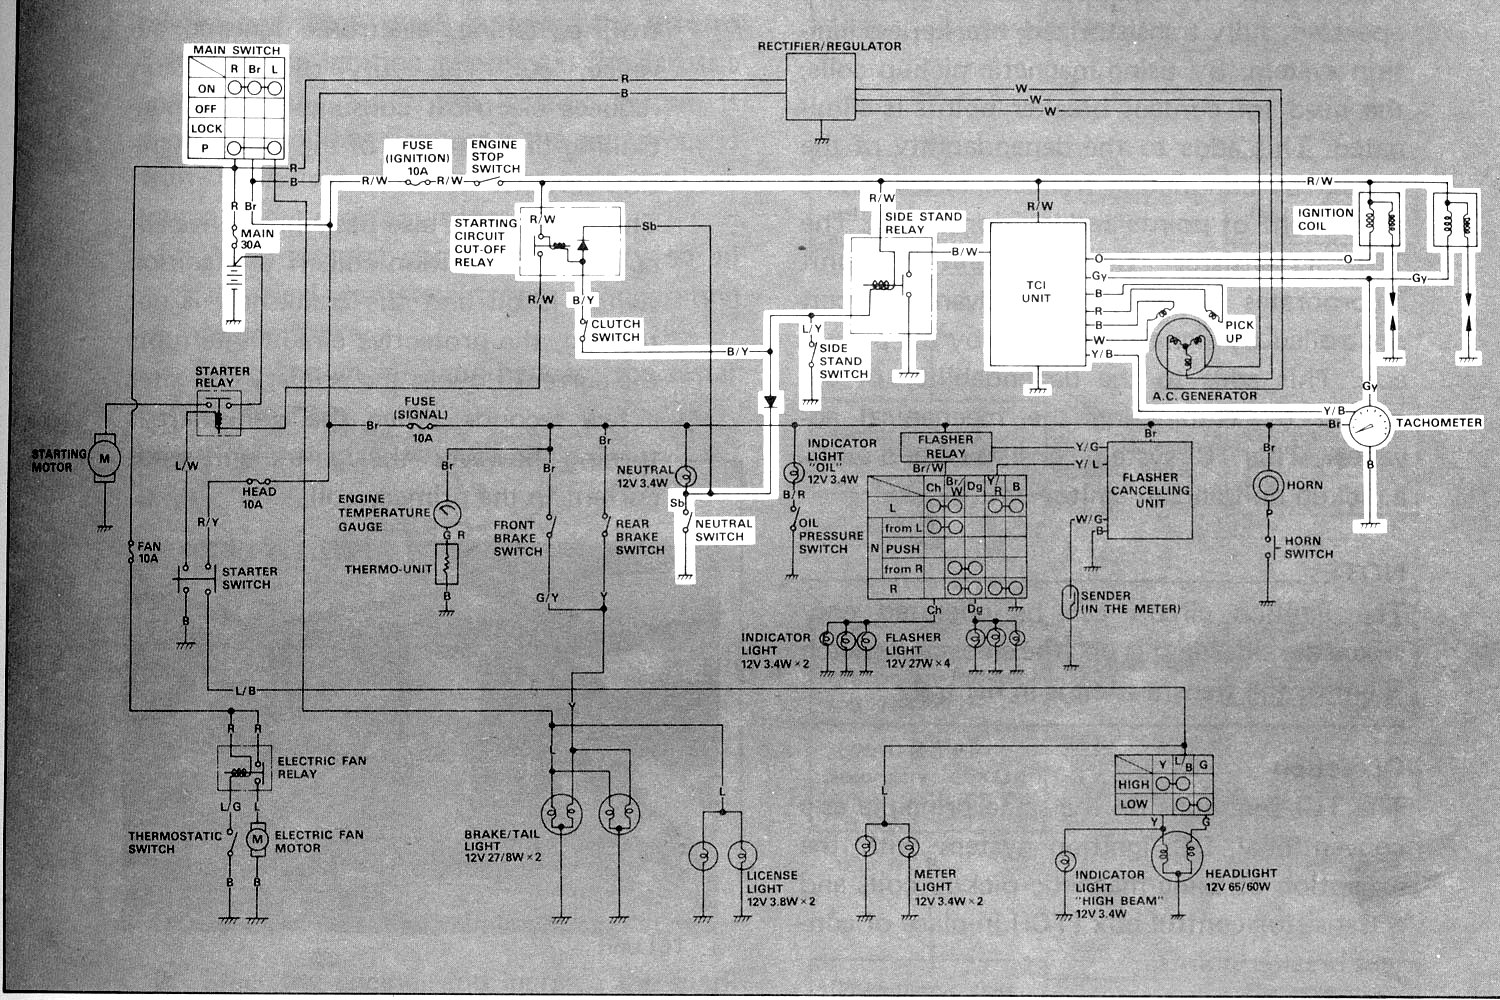 WRG-7069] 1996 Virago 1100 Wiring Diagram on